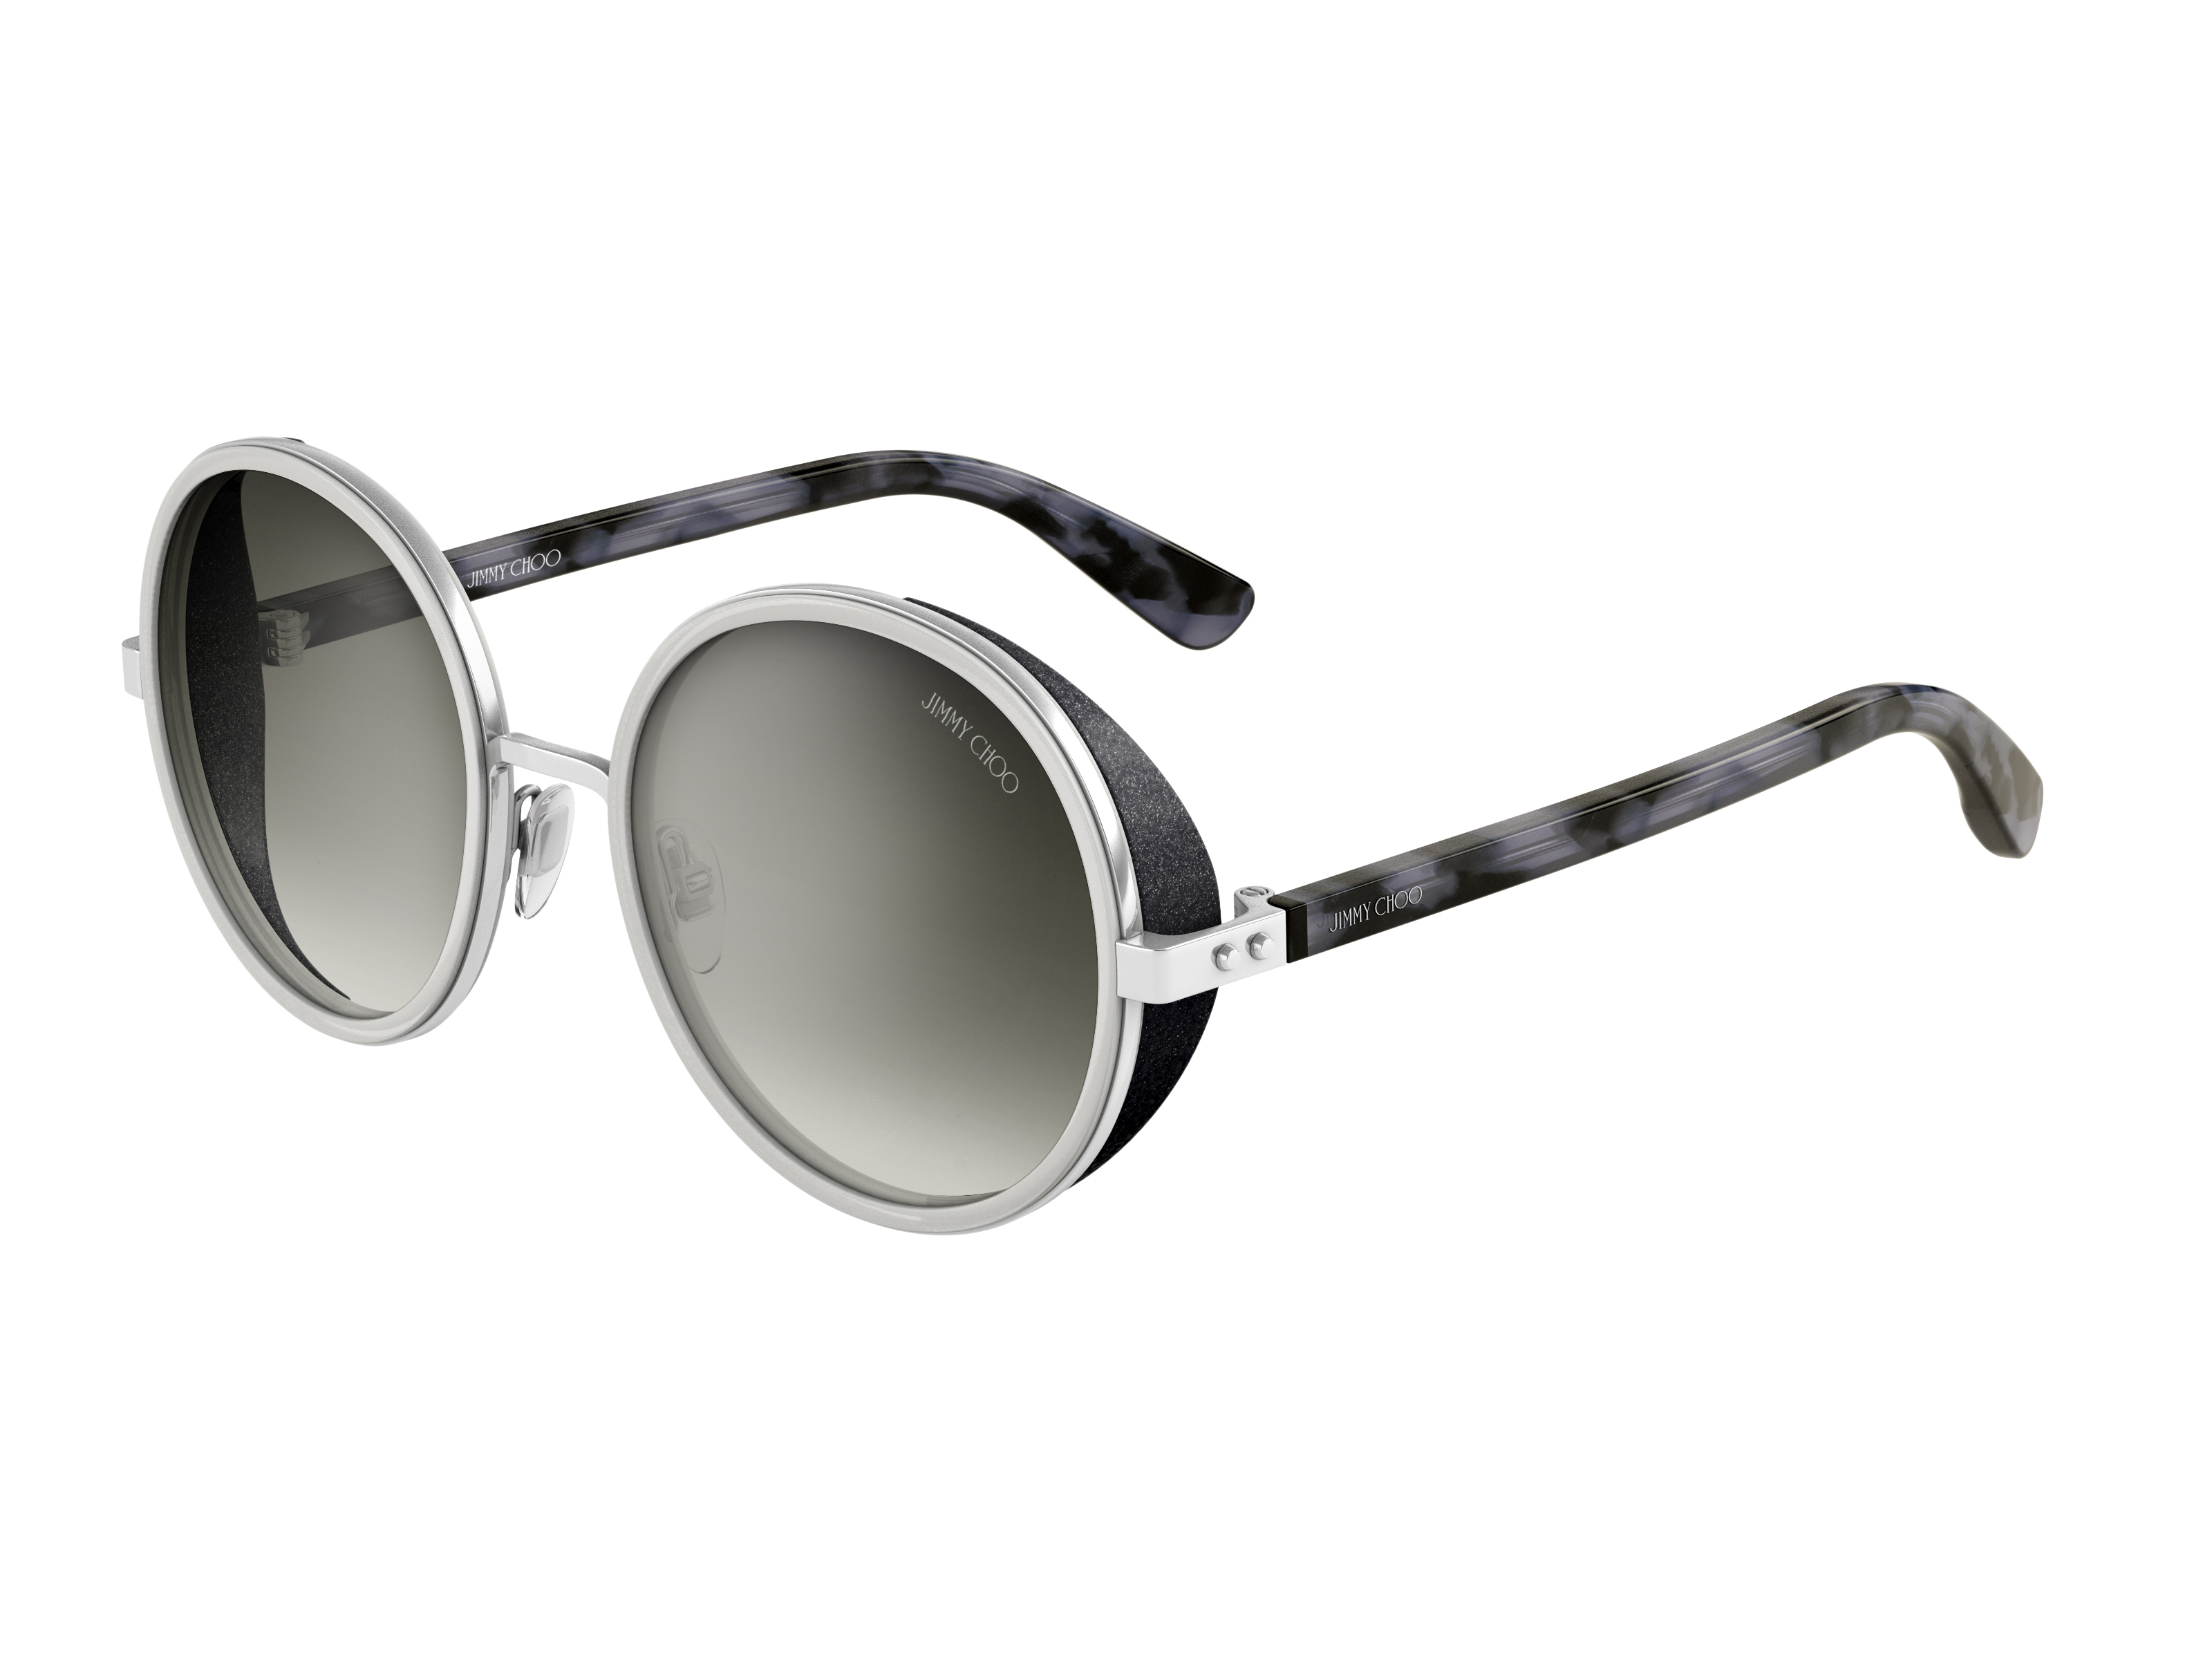 Jimmy Choo Sunglasses 2015